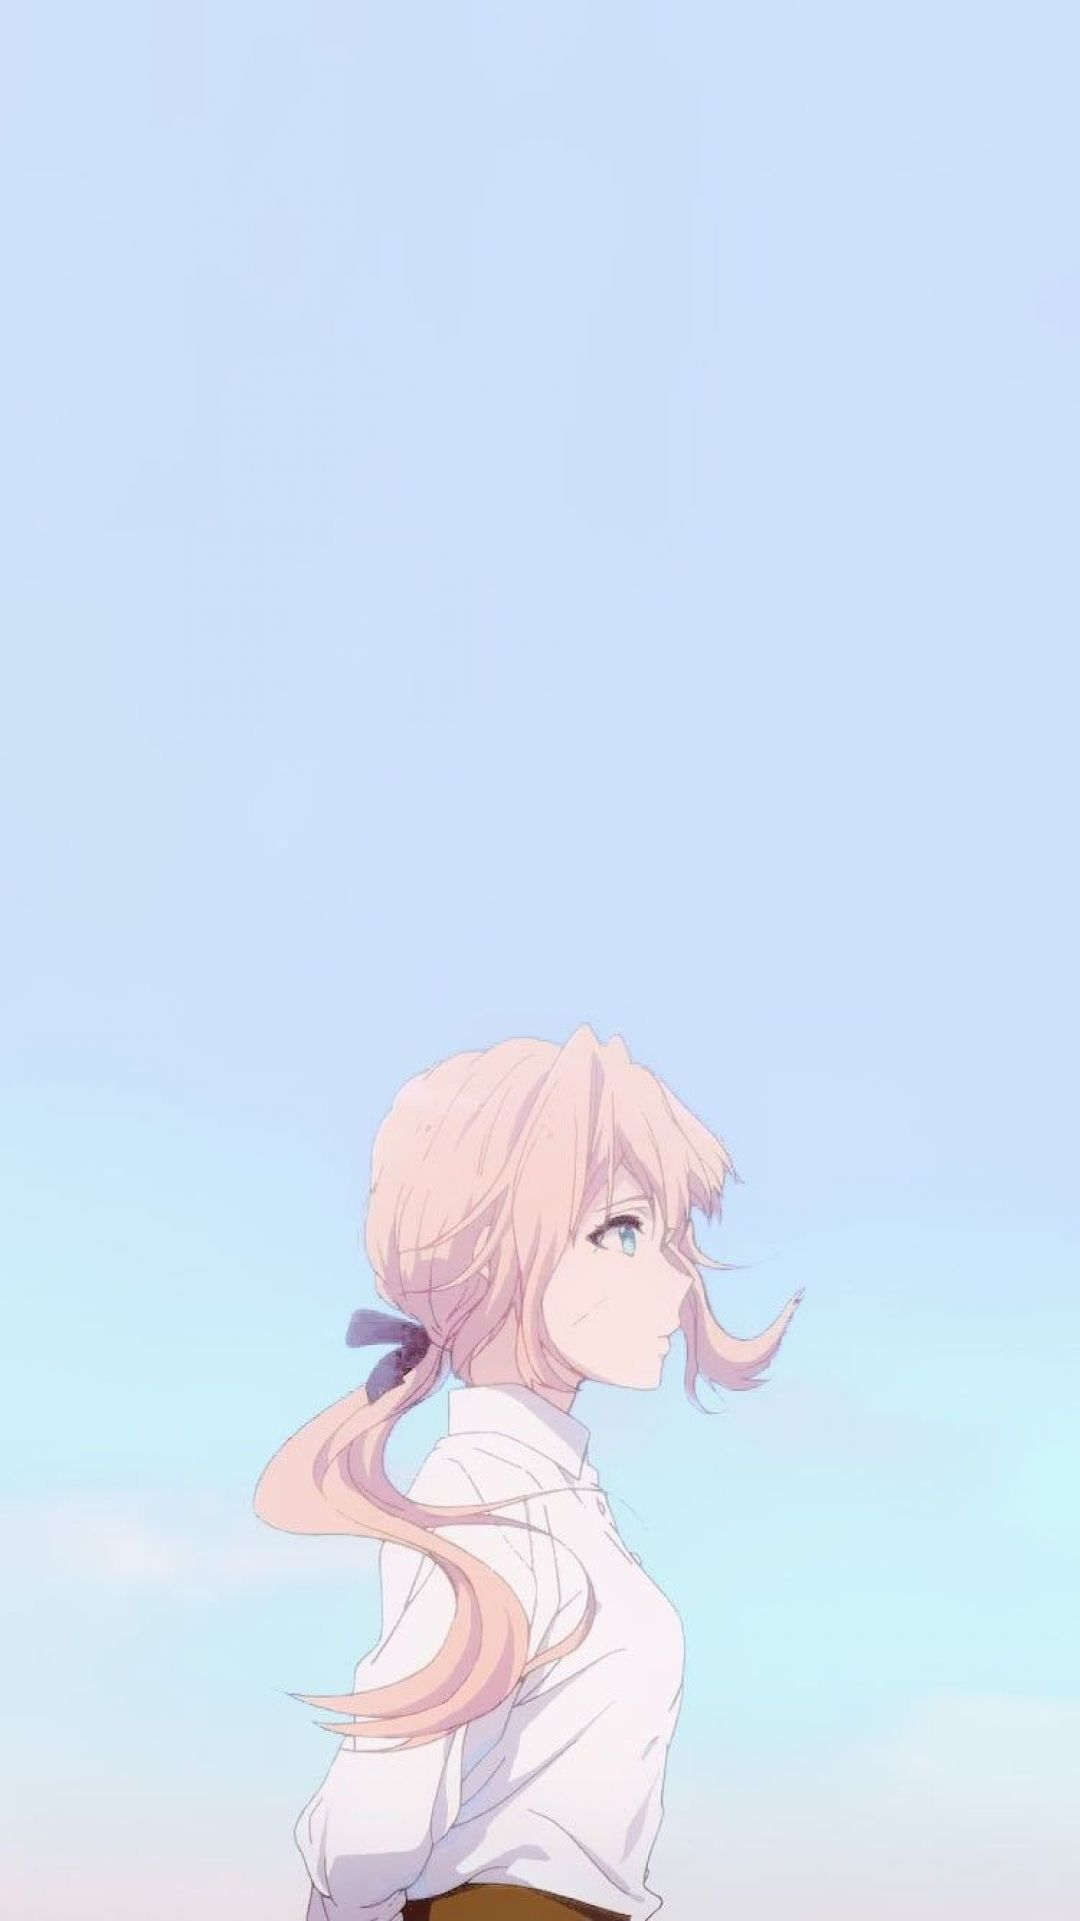 60 Aesthetic Anime Wallpaper Iphone Beautiful Take Your Heart Elak Android Iphone Hd Wallpaper Background Download Png Jpg 2021